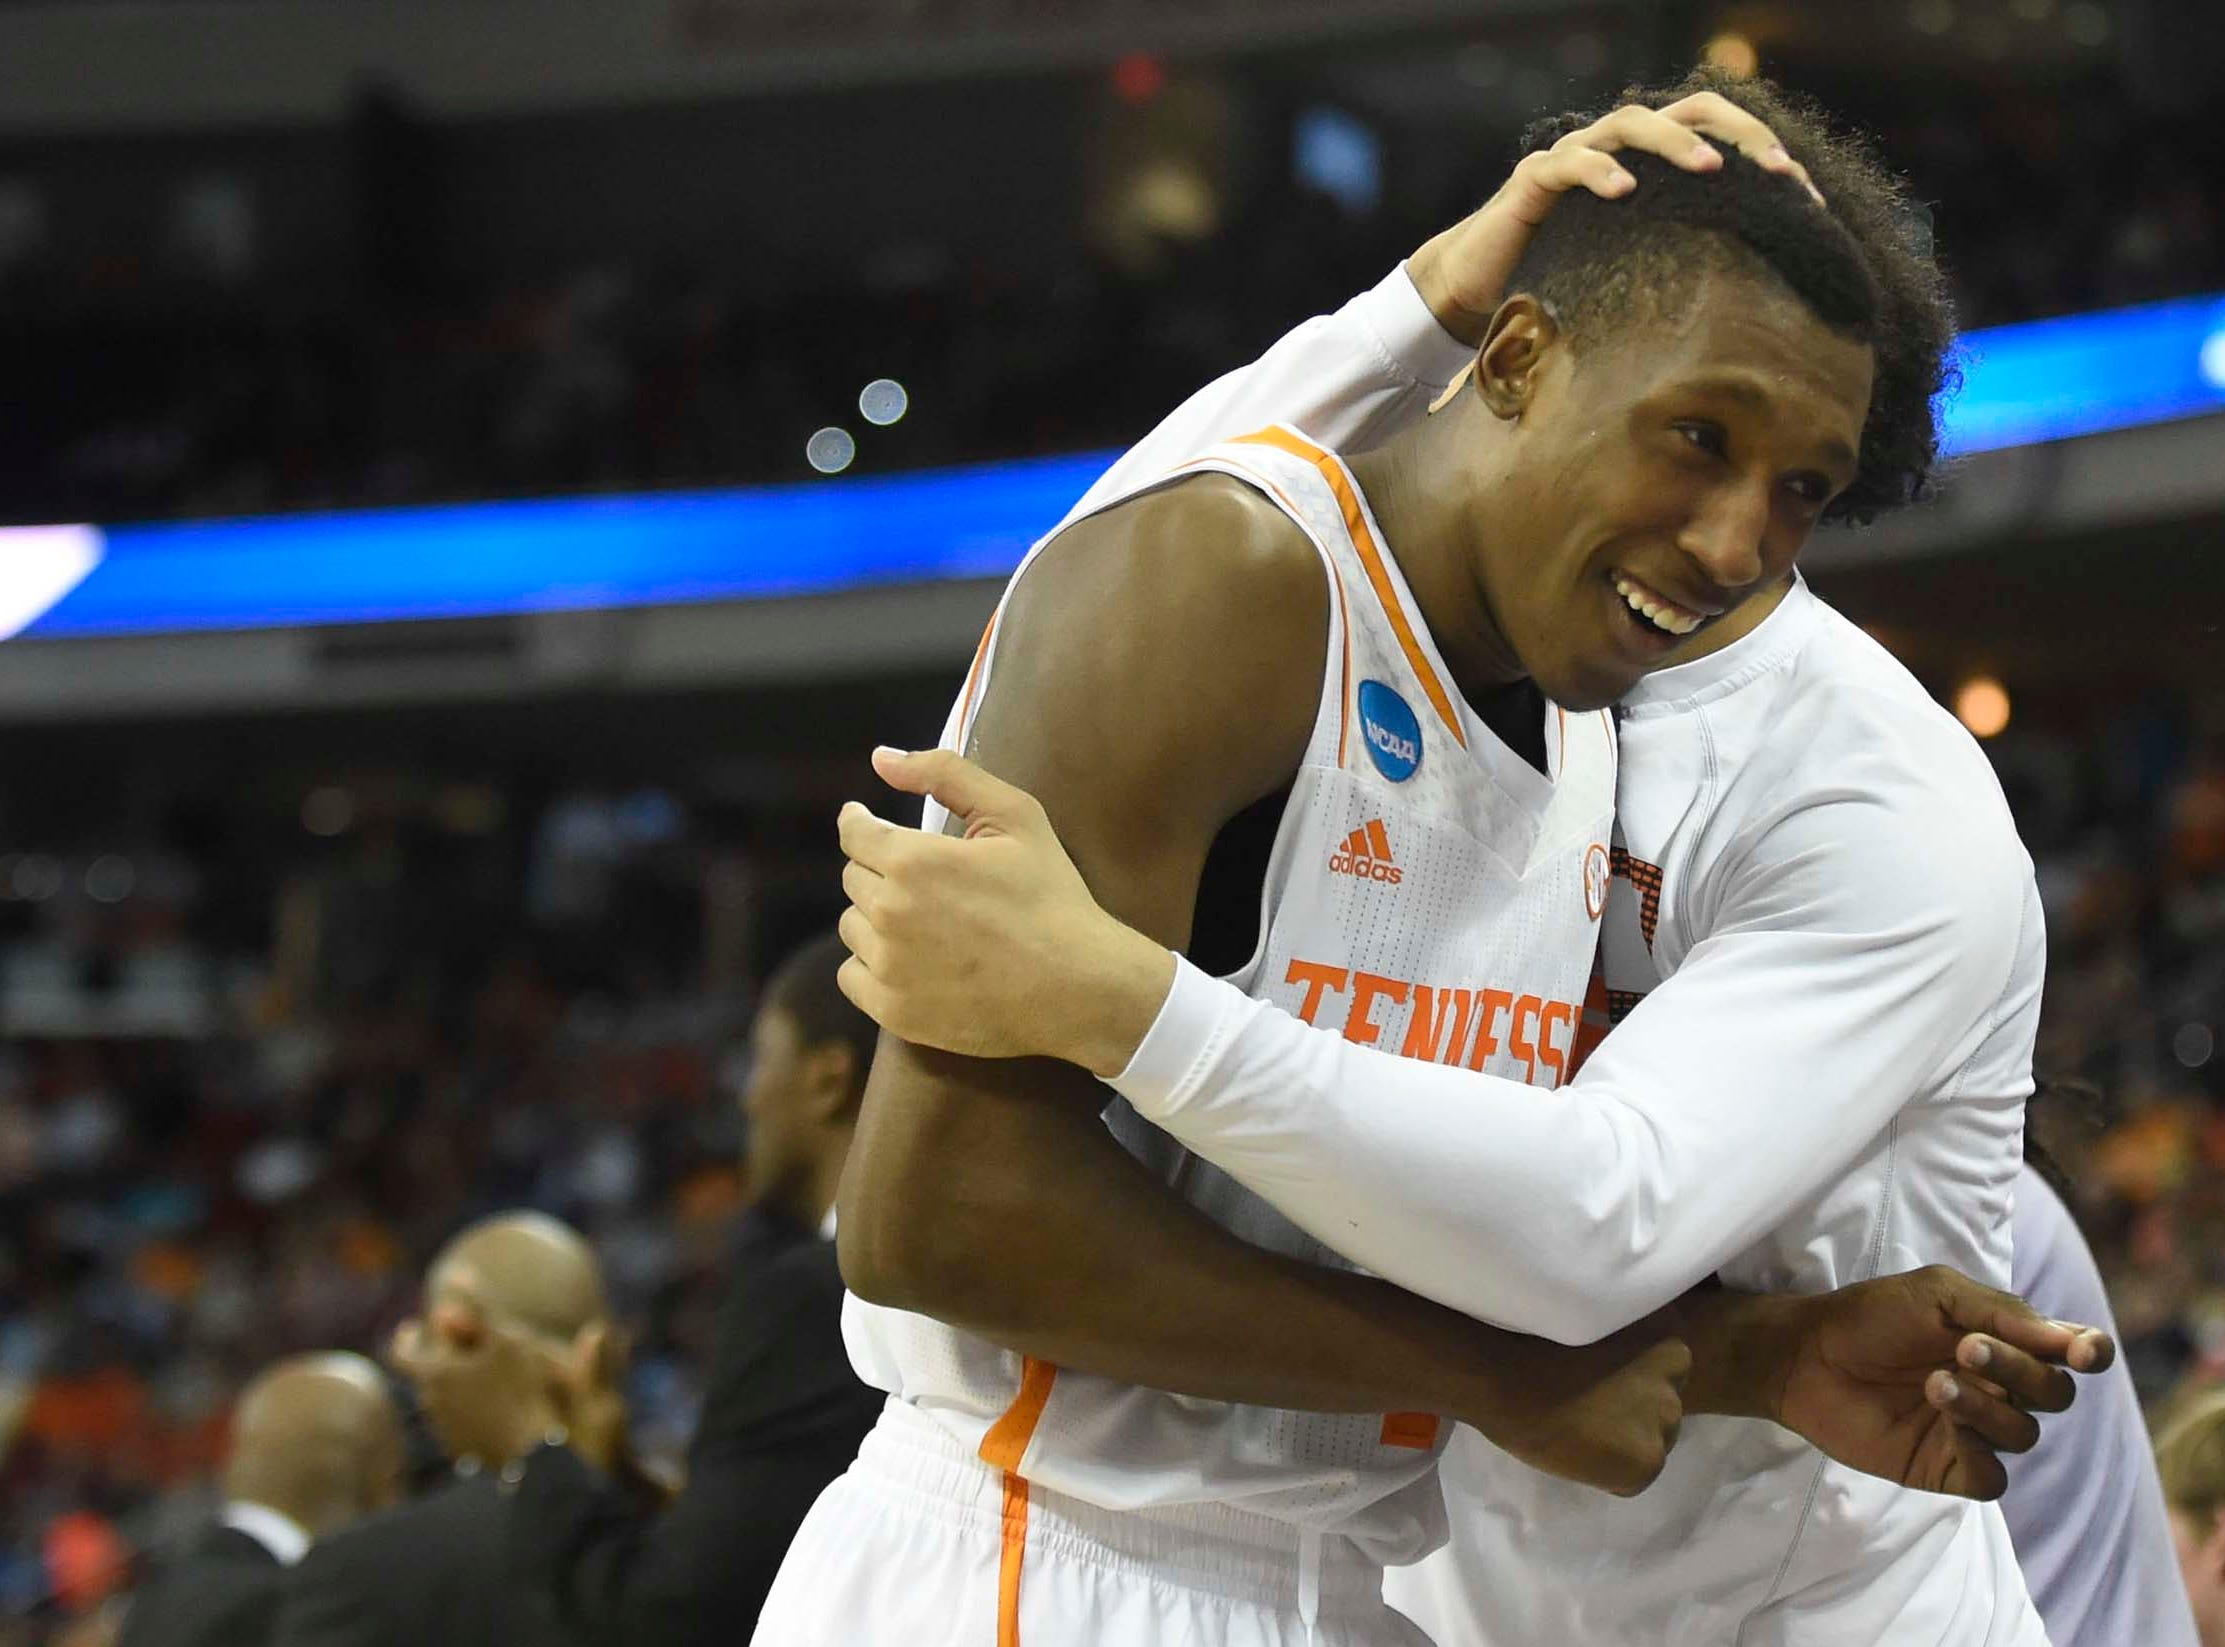 Tennessee guard Josh Richardson gets a hug from teammate Tennessee guard Quinton Chievous after Tennessee secured a Sweet Sixteen berth by defeating Mercer 83-63 in a third-round NCAA tournament game at the PNC Arena in Raleigh, N.C. on Sunday, March 23, 2014.